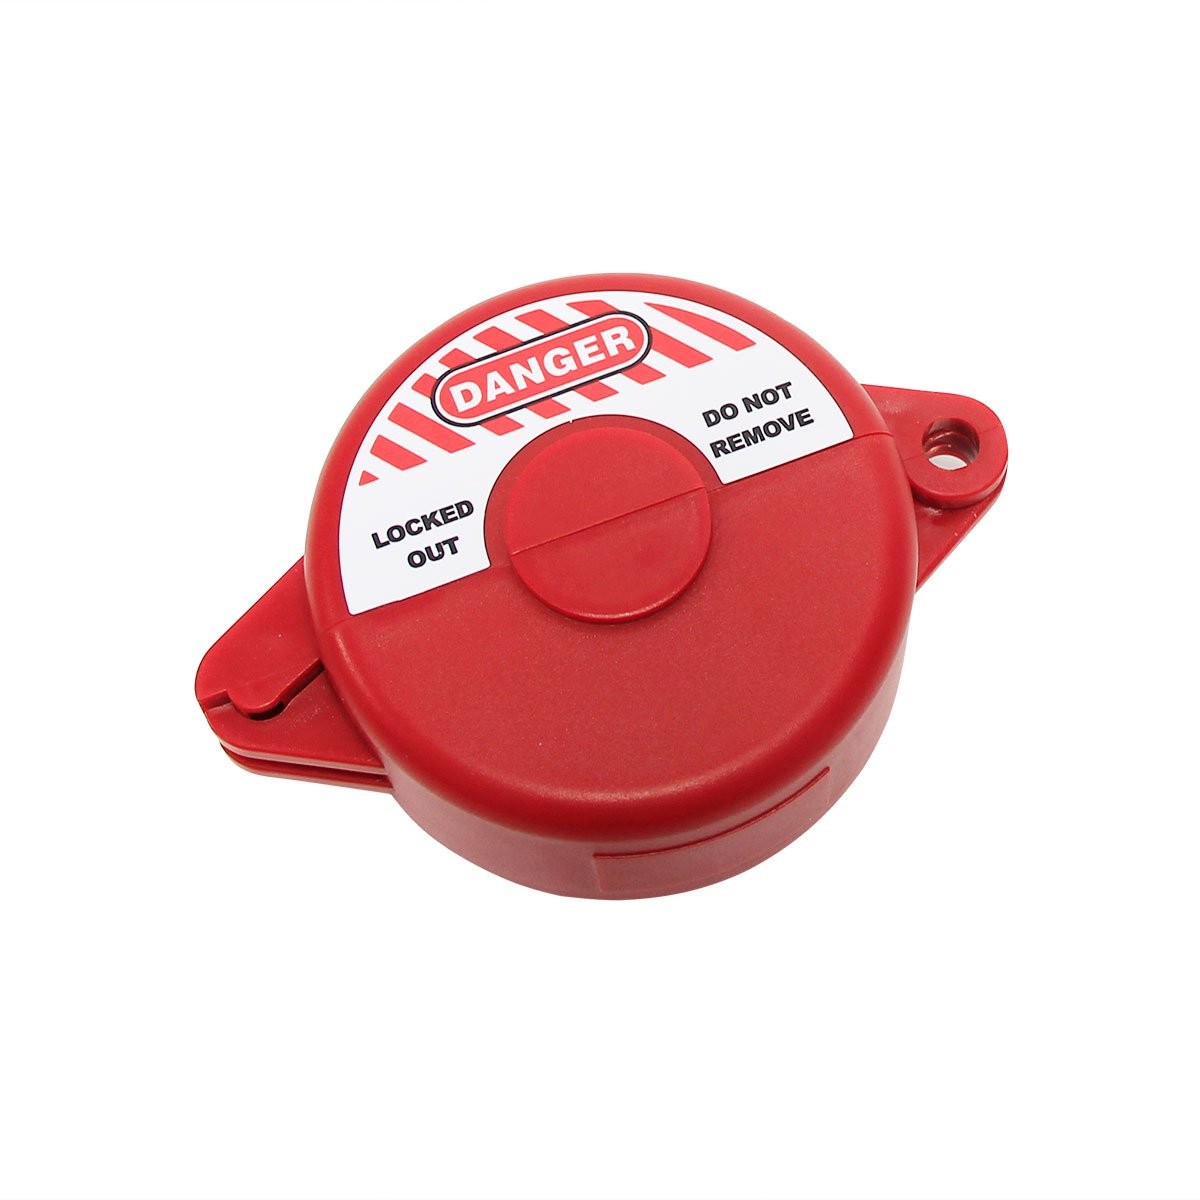 """Wisamic Gate Valve Lockout 1-4/5"""" to 3-1/2"""" with 3/8'' Diameter Padlock Hole, Gas Valve Lockout for Petroleum, Natural Gas Valve, Chemical Industry- Red"""